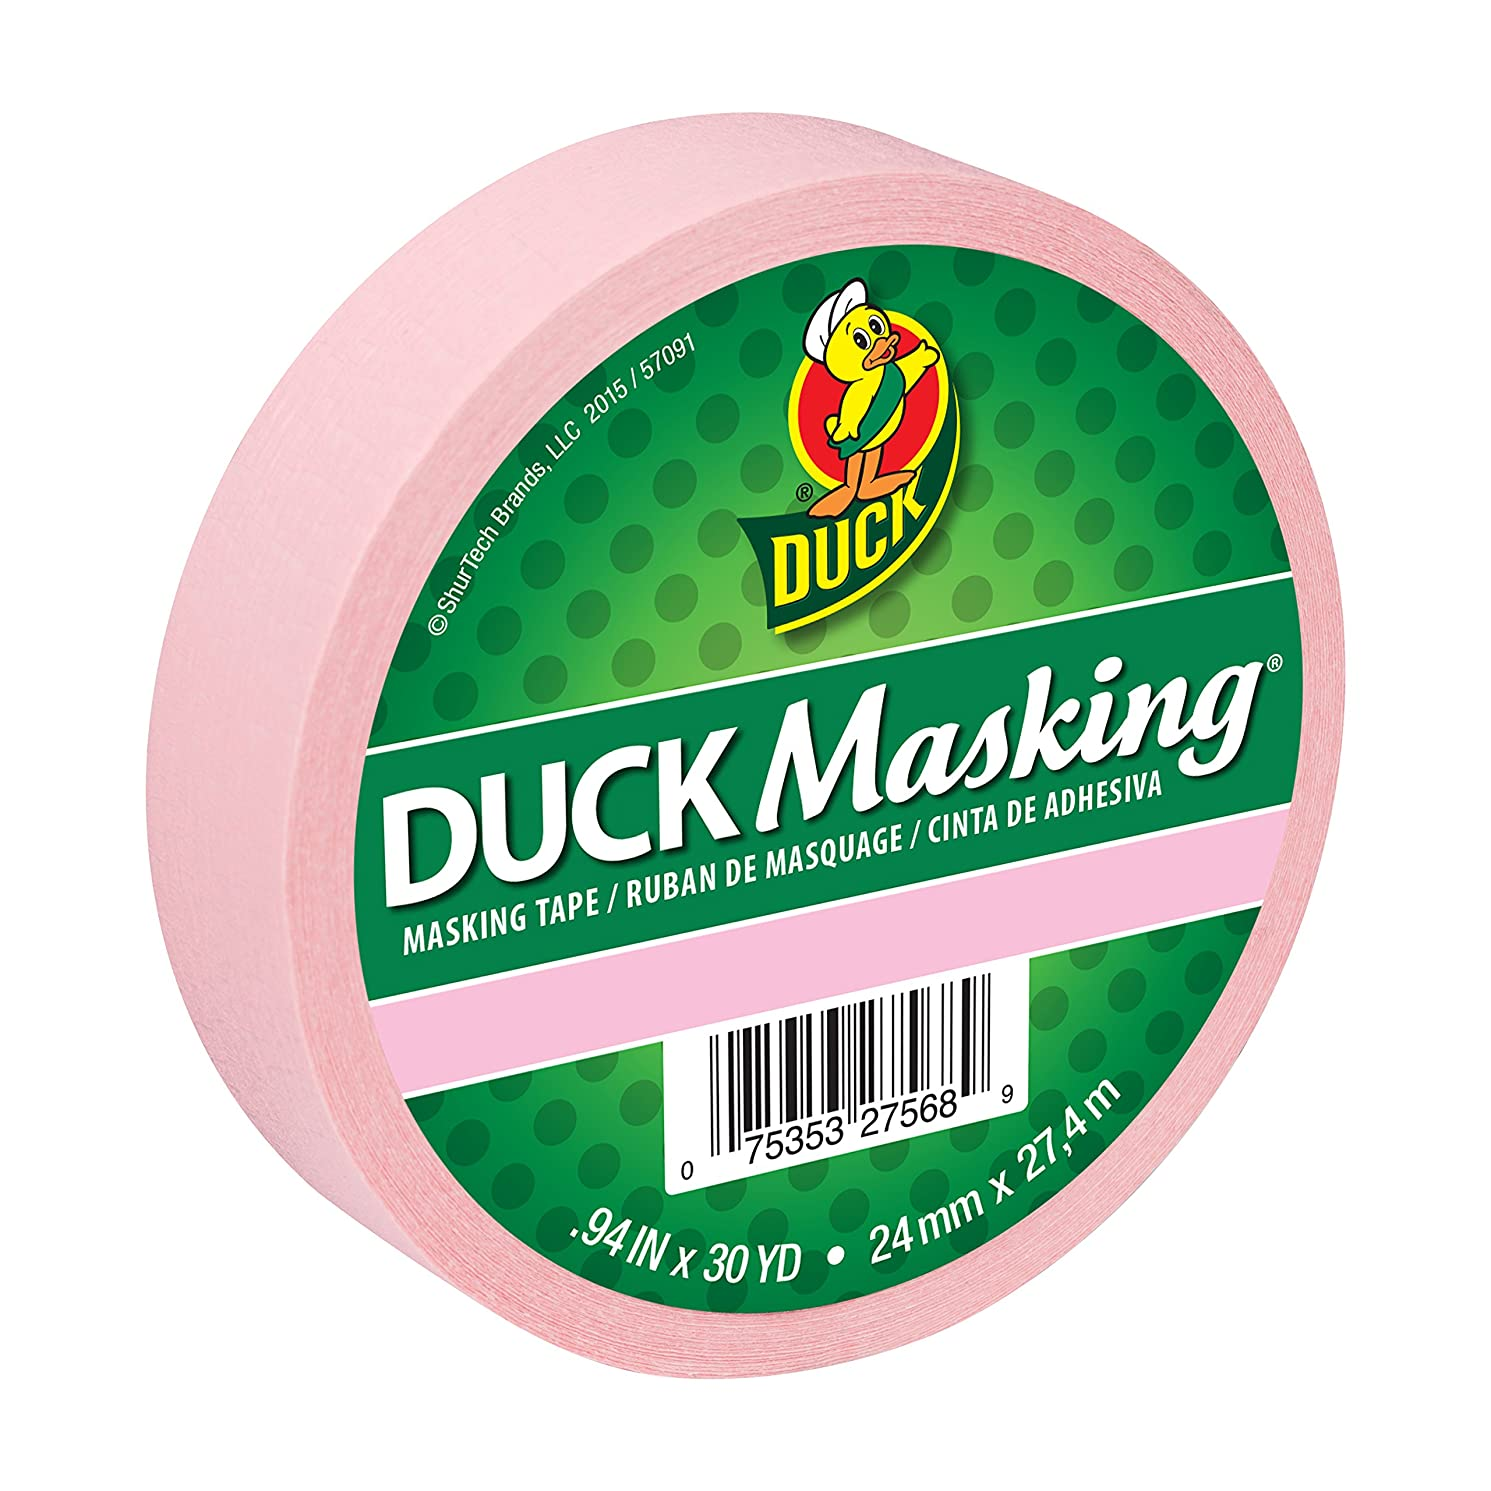 Duck Masking 240879 Pink Color Masking Tape.94-Inch by 30 Yards